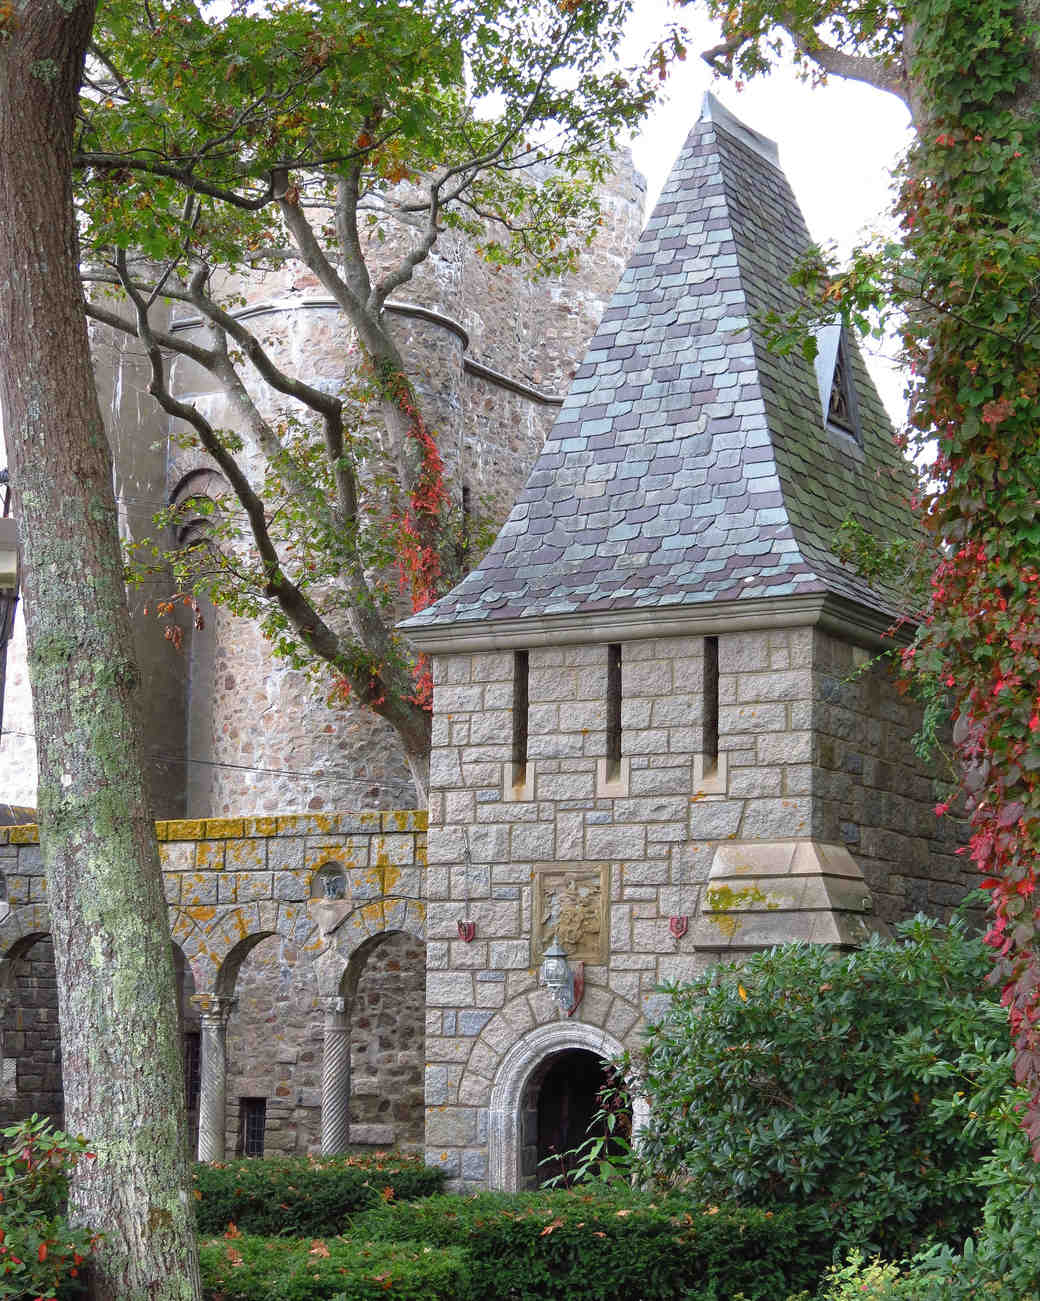 castle-wedding-venues-hammond-massachusetts-0115.jpg